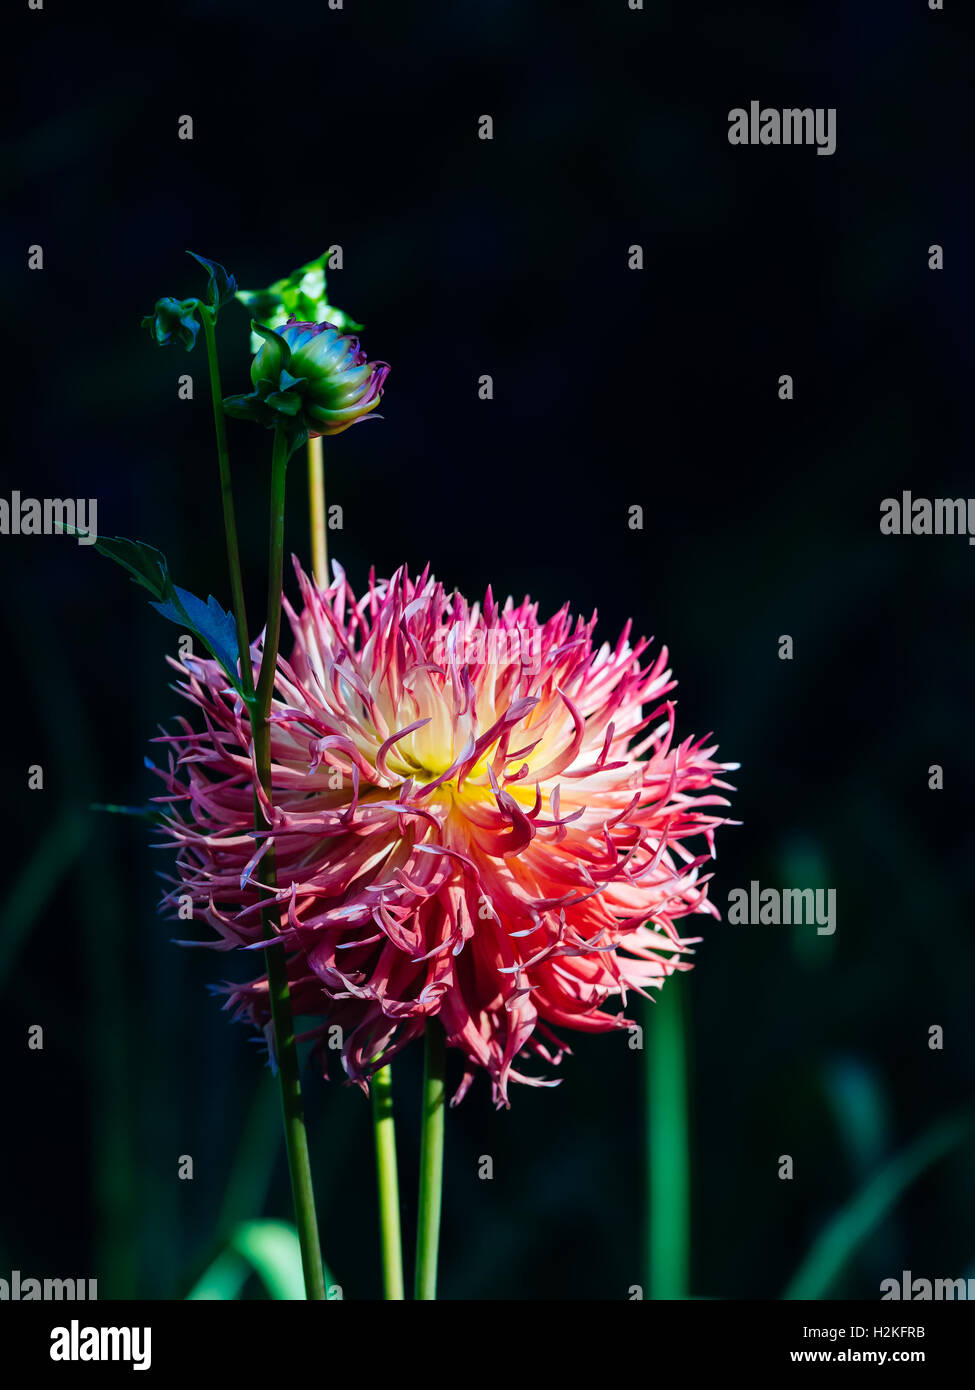 Flower and bud of a red dahlia on darkly green background Stock Photo